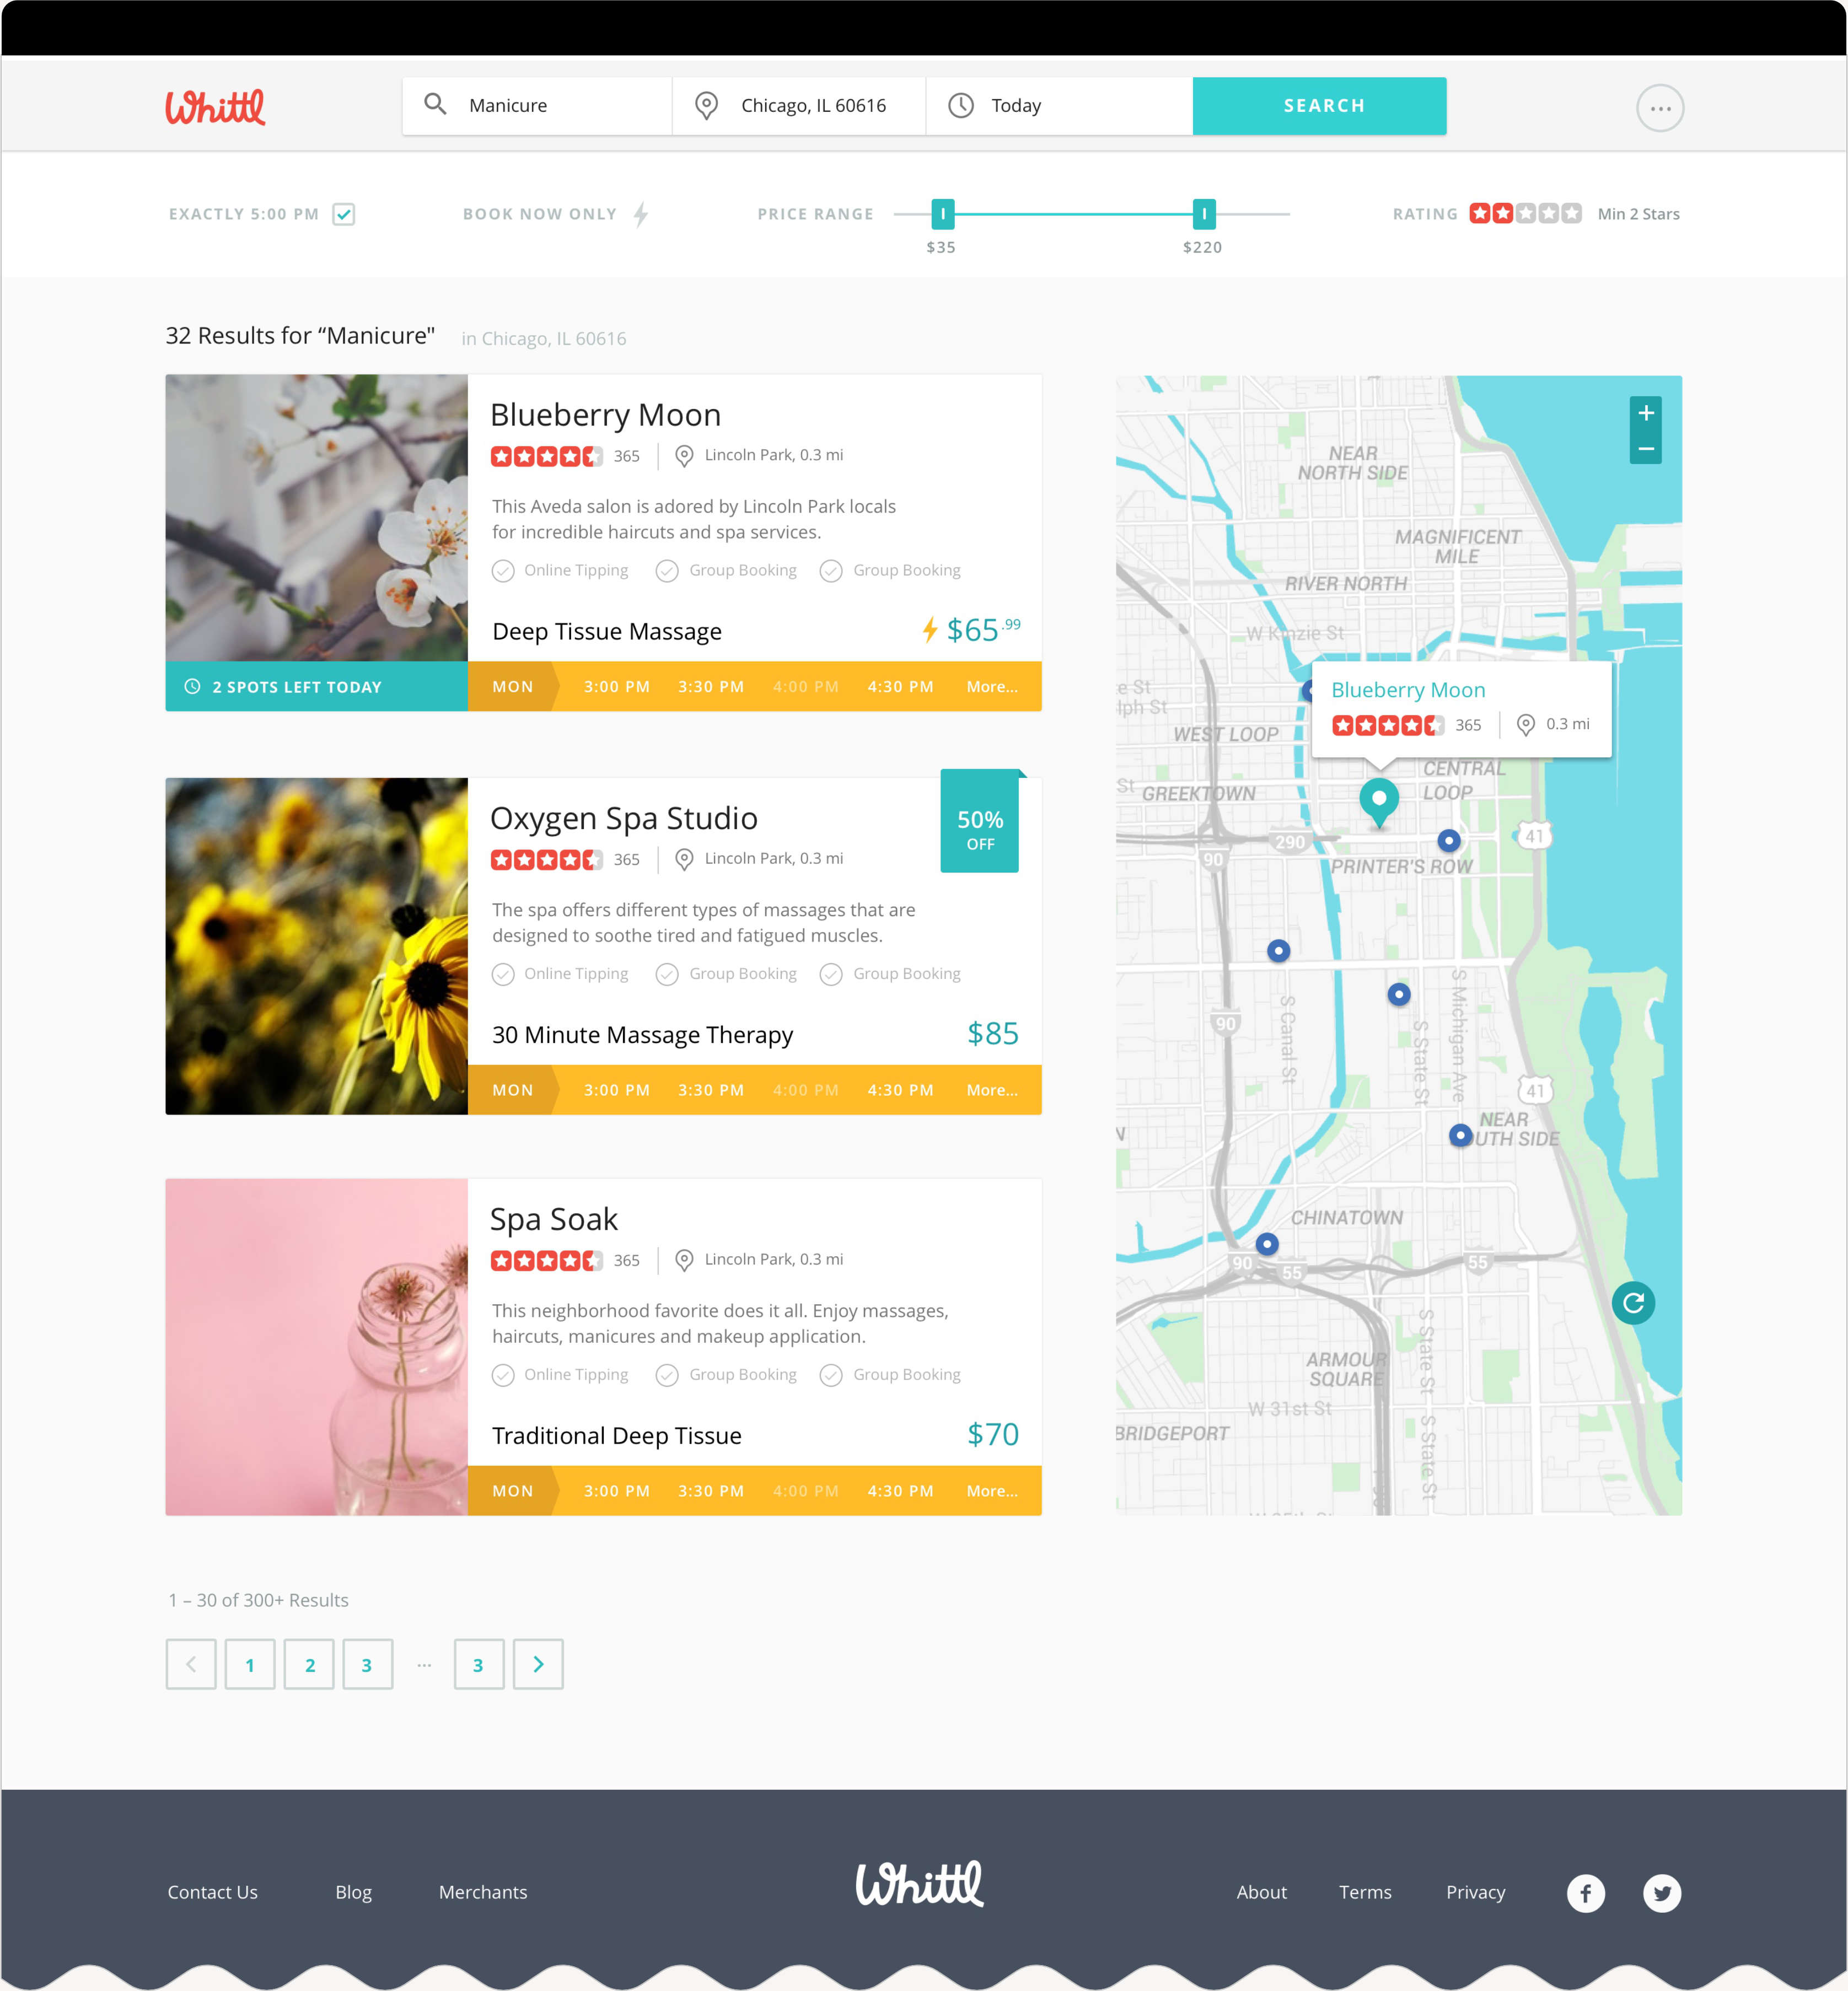 Web design of interactive map.